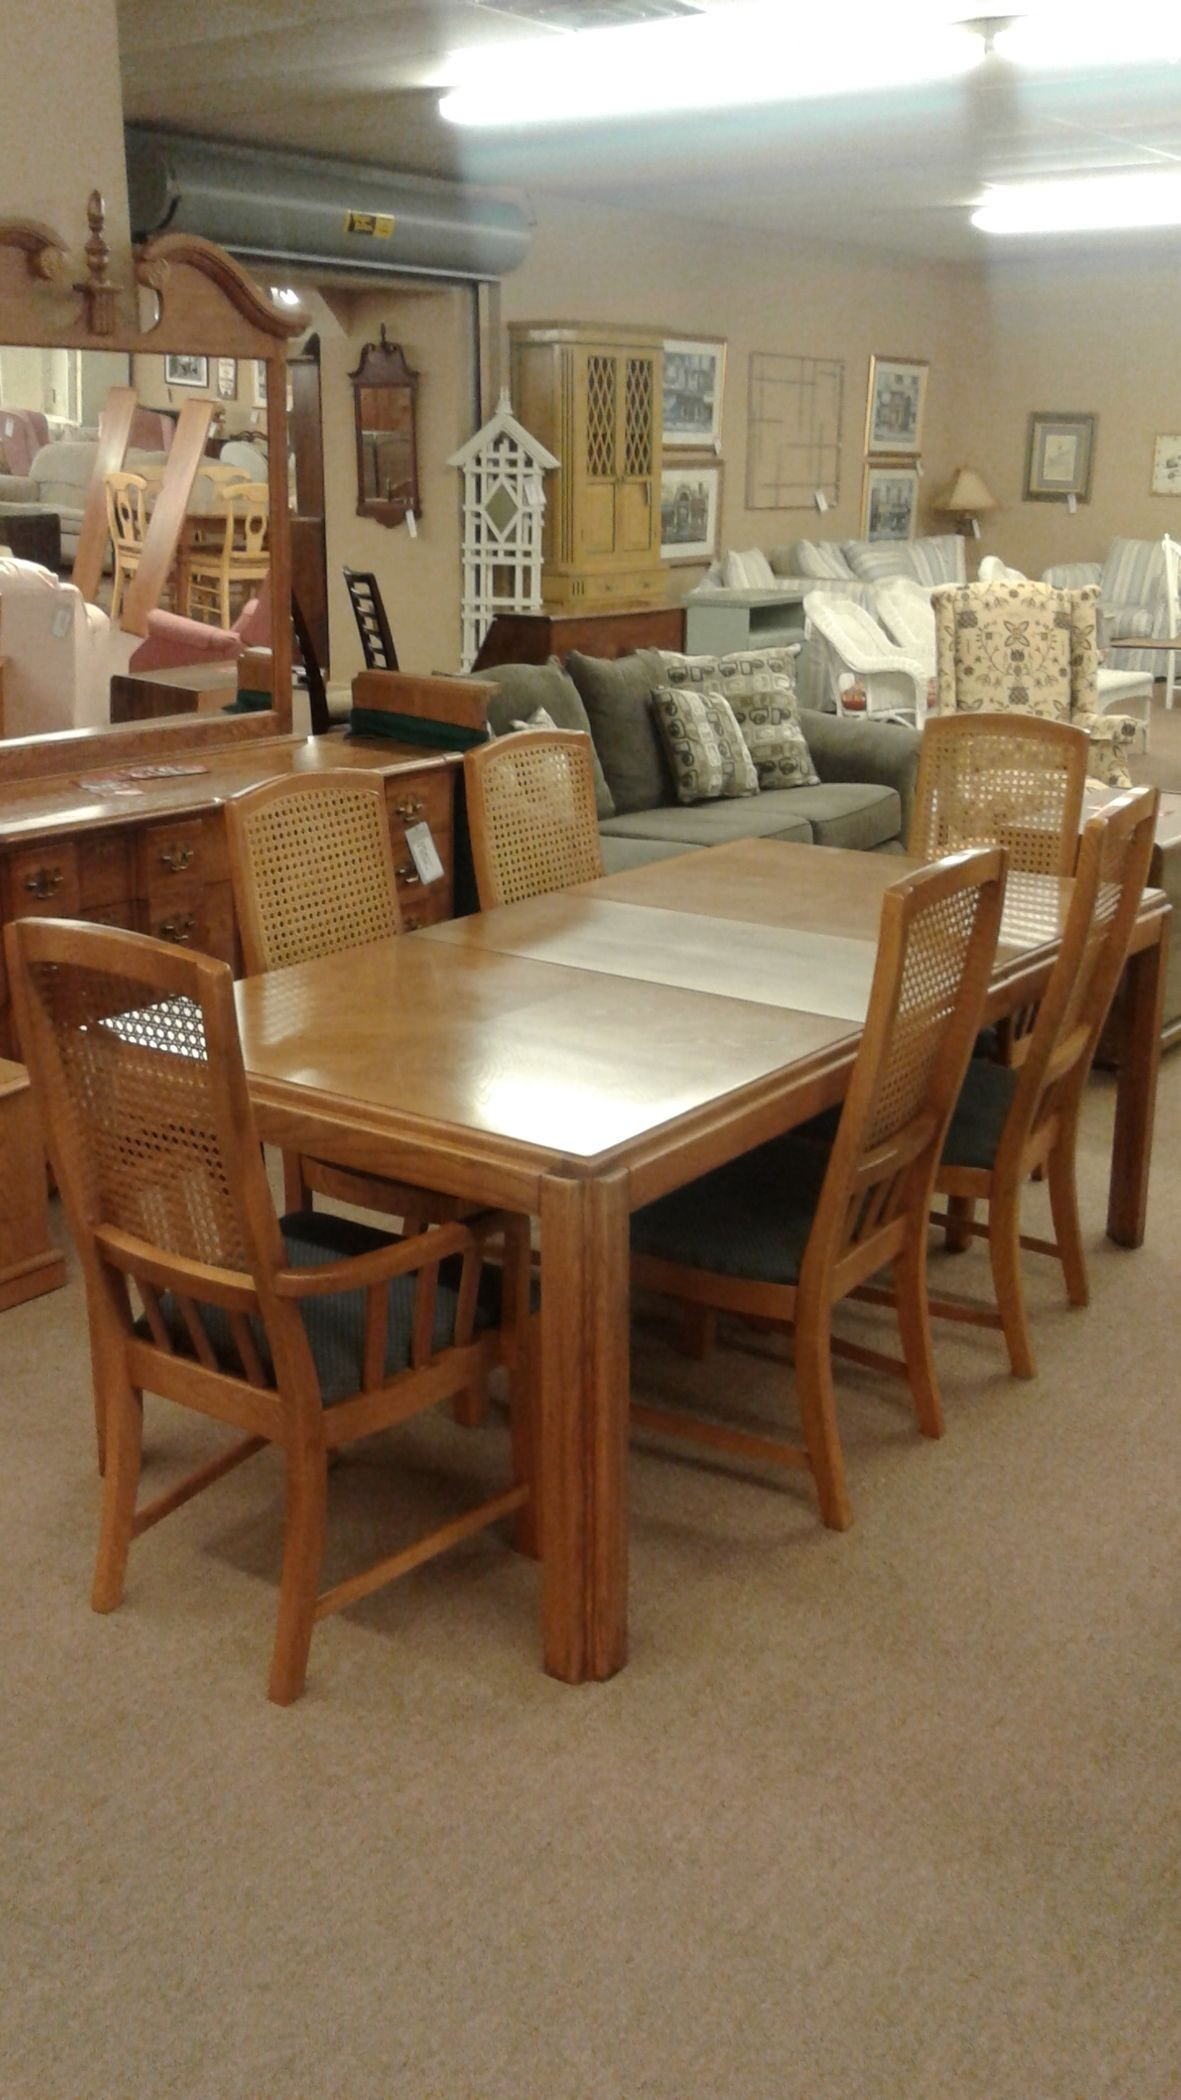 BASSETT DINING TABLE WCHAIRS Delmarva Furniture Consignment